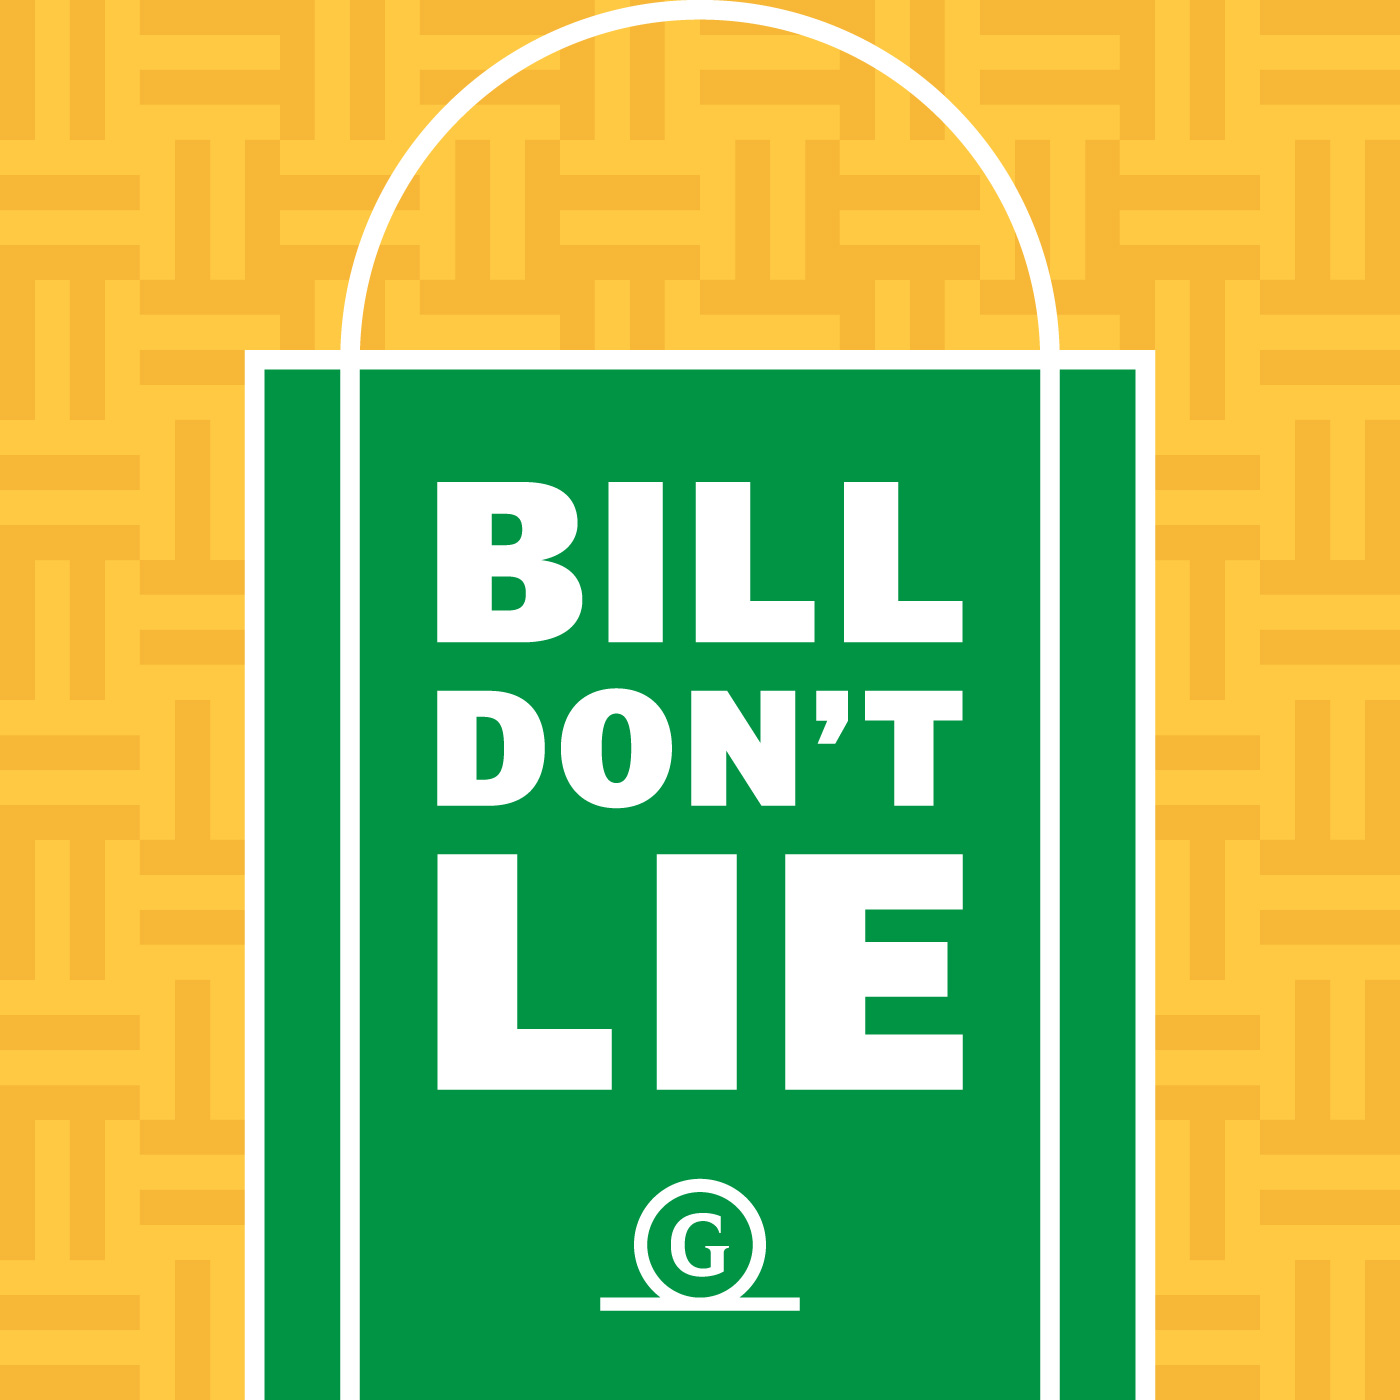 ESPN: Bill Don't Lie